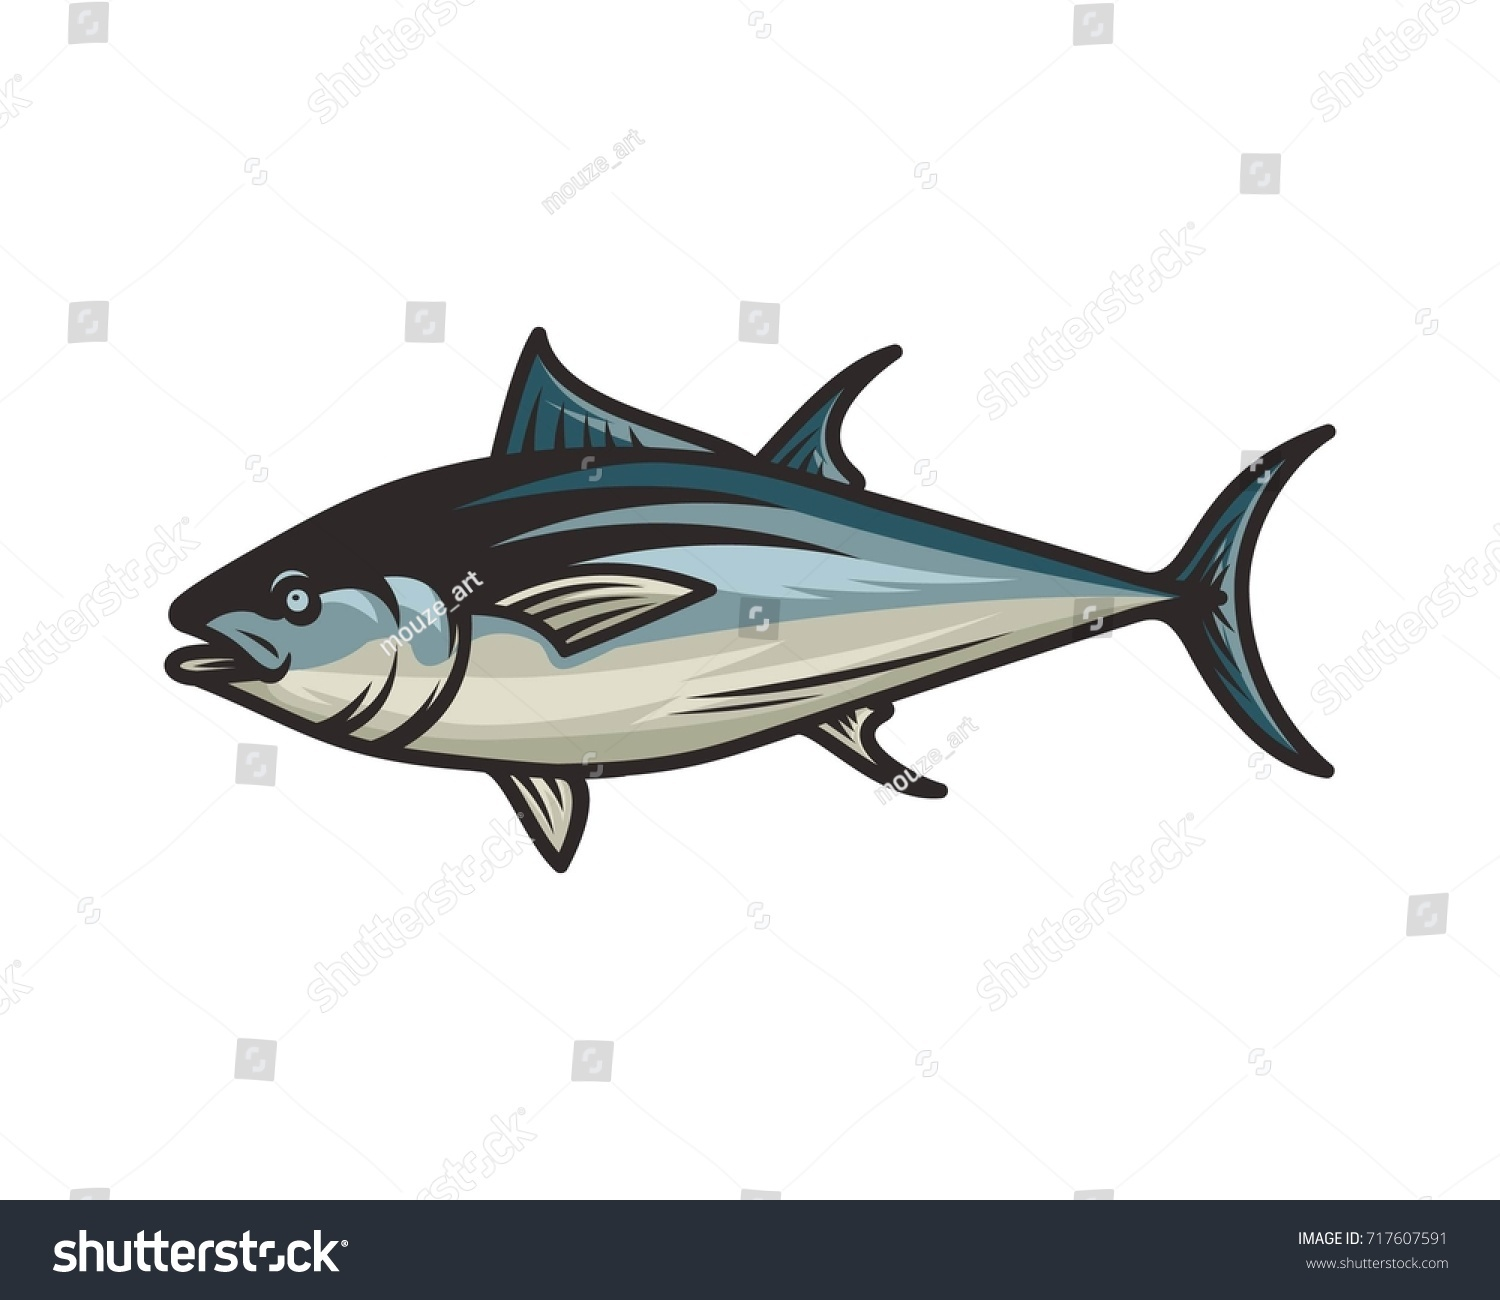 tuna fish vector illustration stock vector royalty free 717607591 https www shutterstock com image vector tuna fish vector illustration 717607591